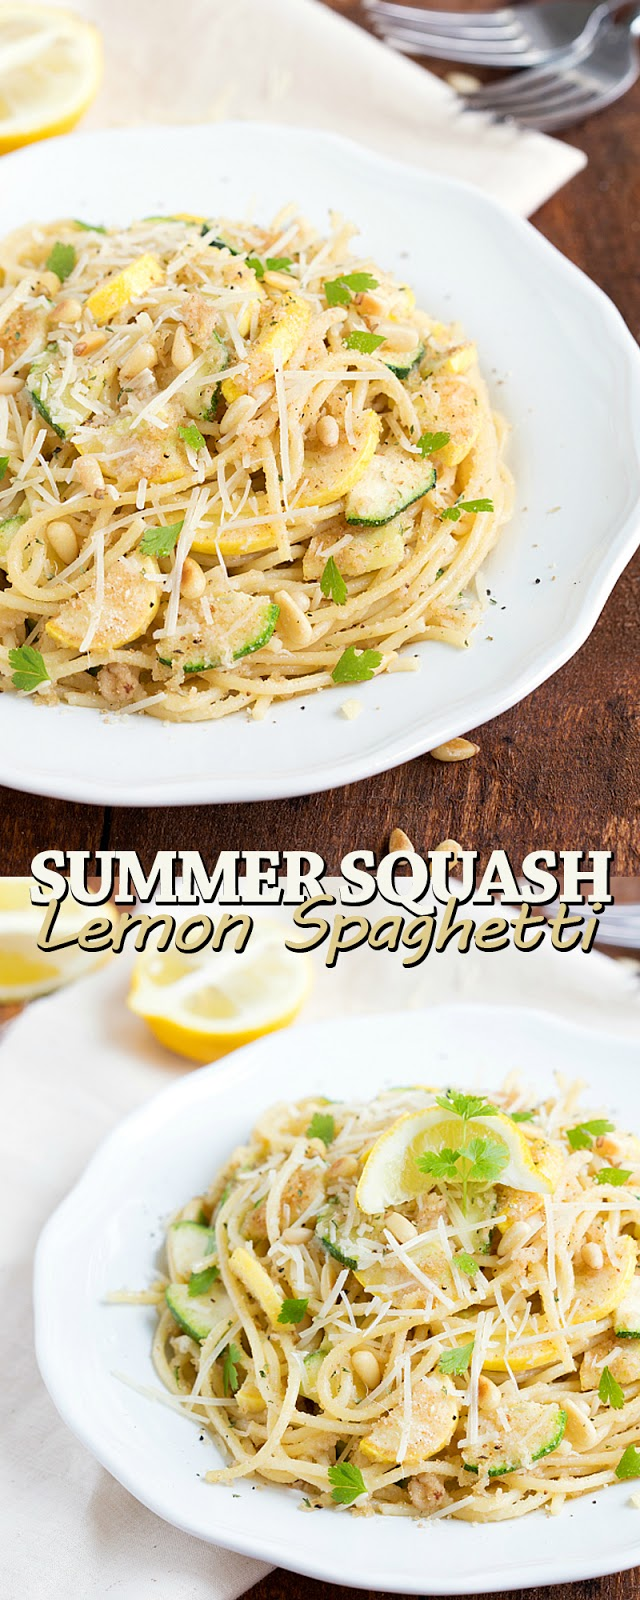 SUMMER SQUASH LEMON SPAGHETTI